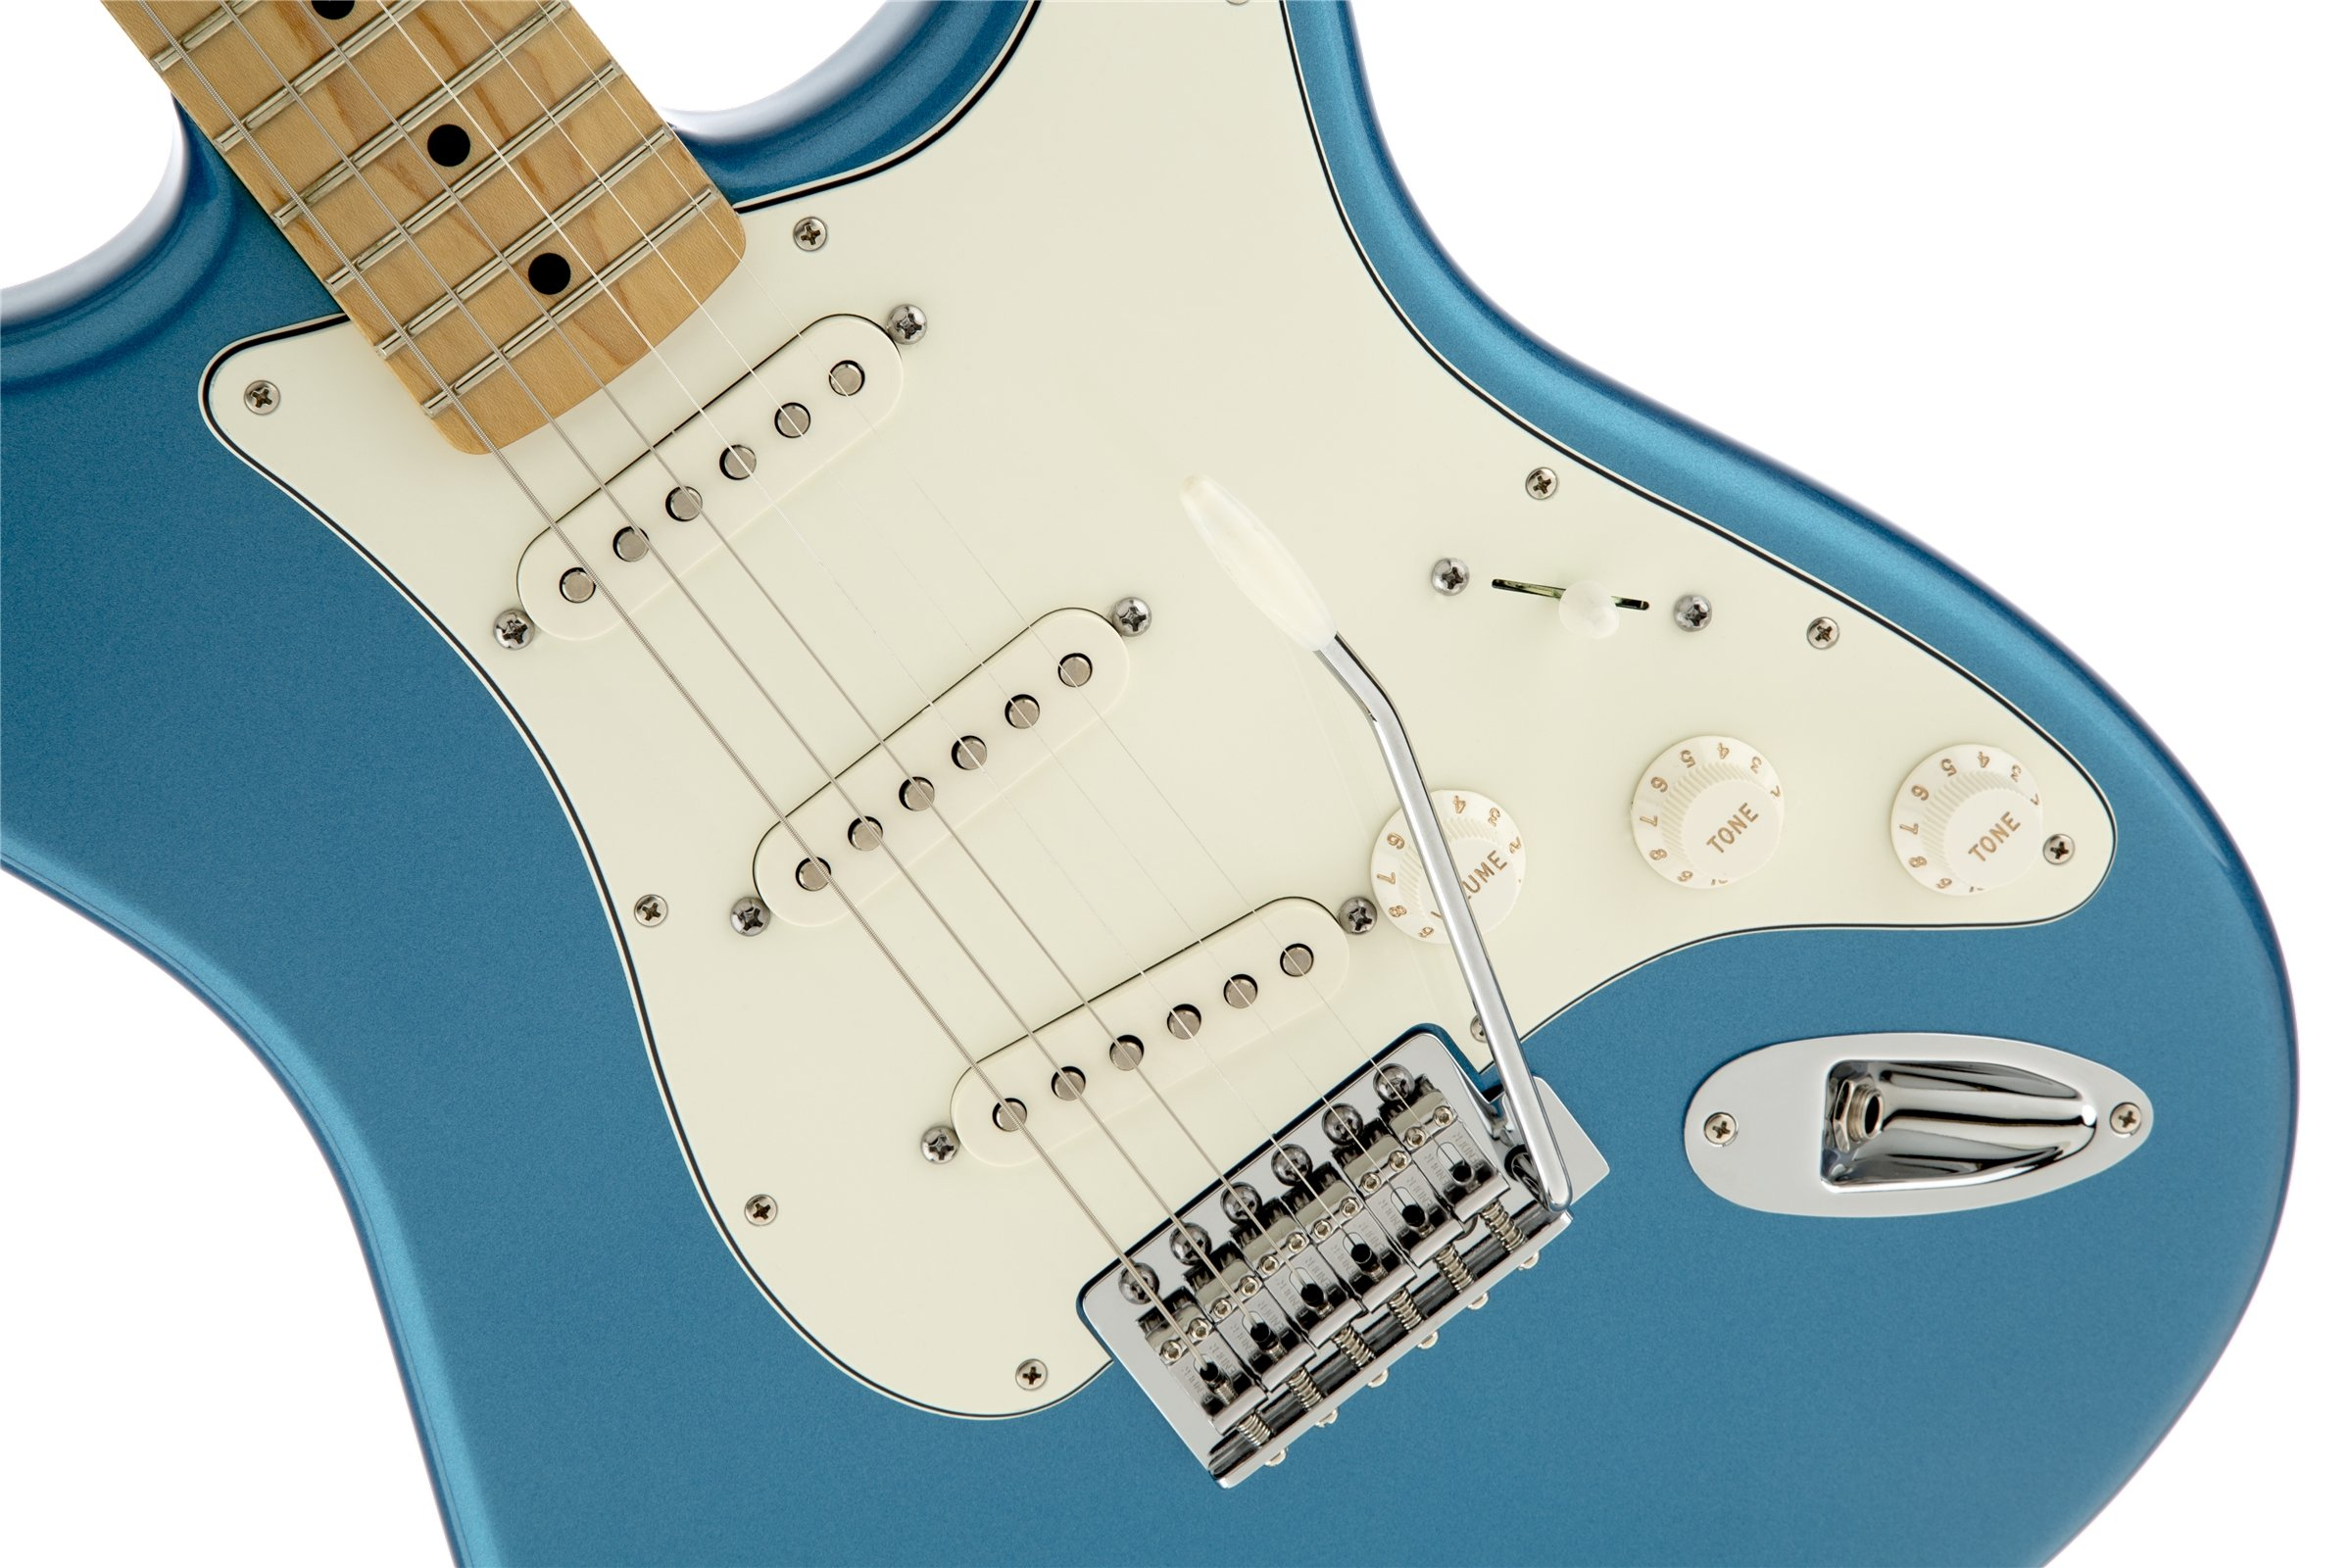 Buy Blue Fender Stratocaster Electric Guitar Now!